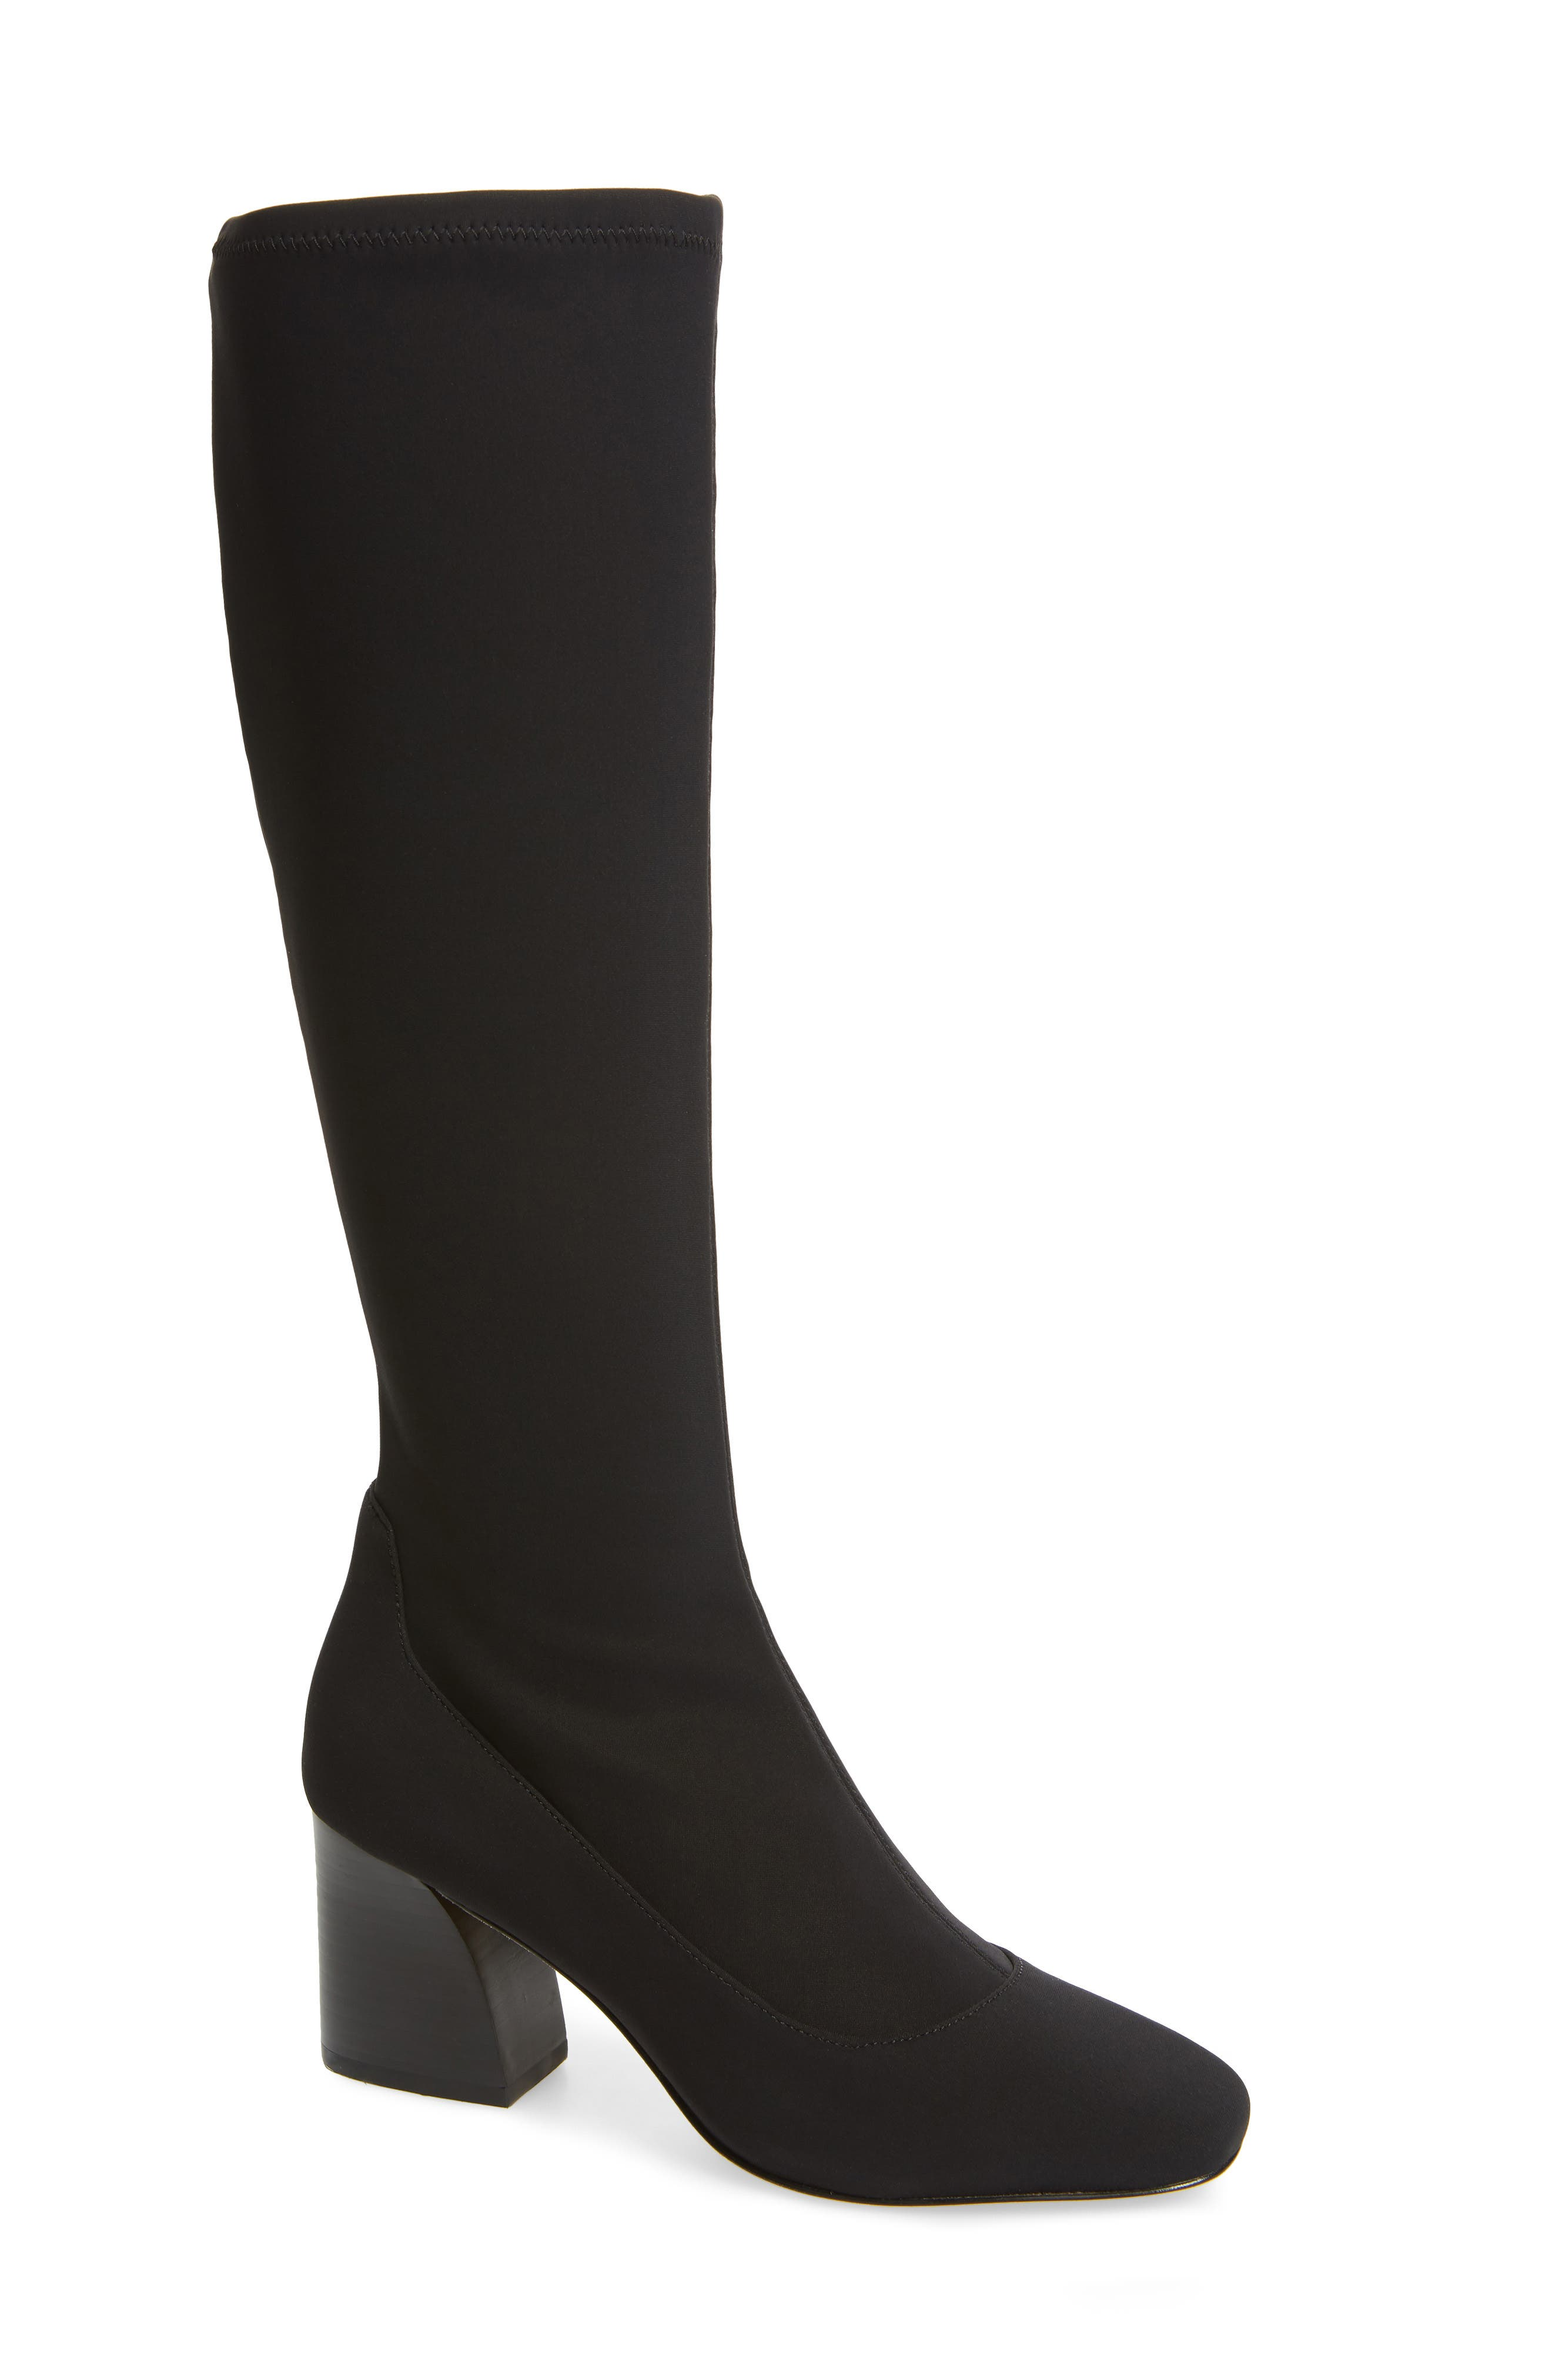 DONALD PLINER, Gerti Knee High Stretch Boot, Main thumbnail 1, color, 001